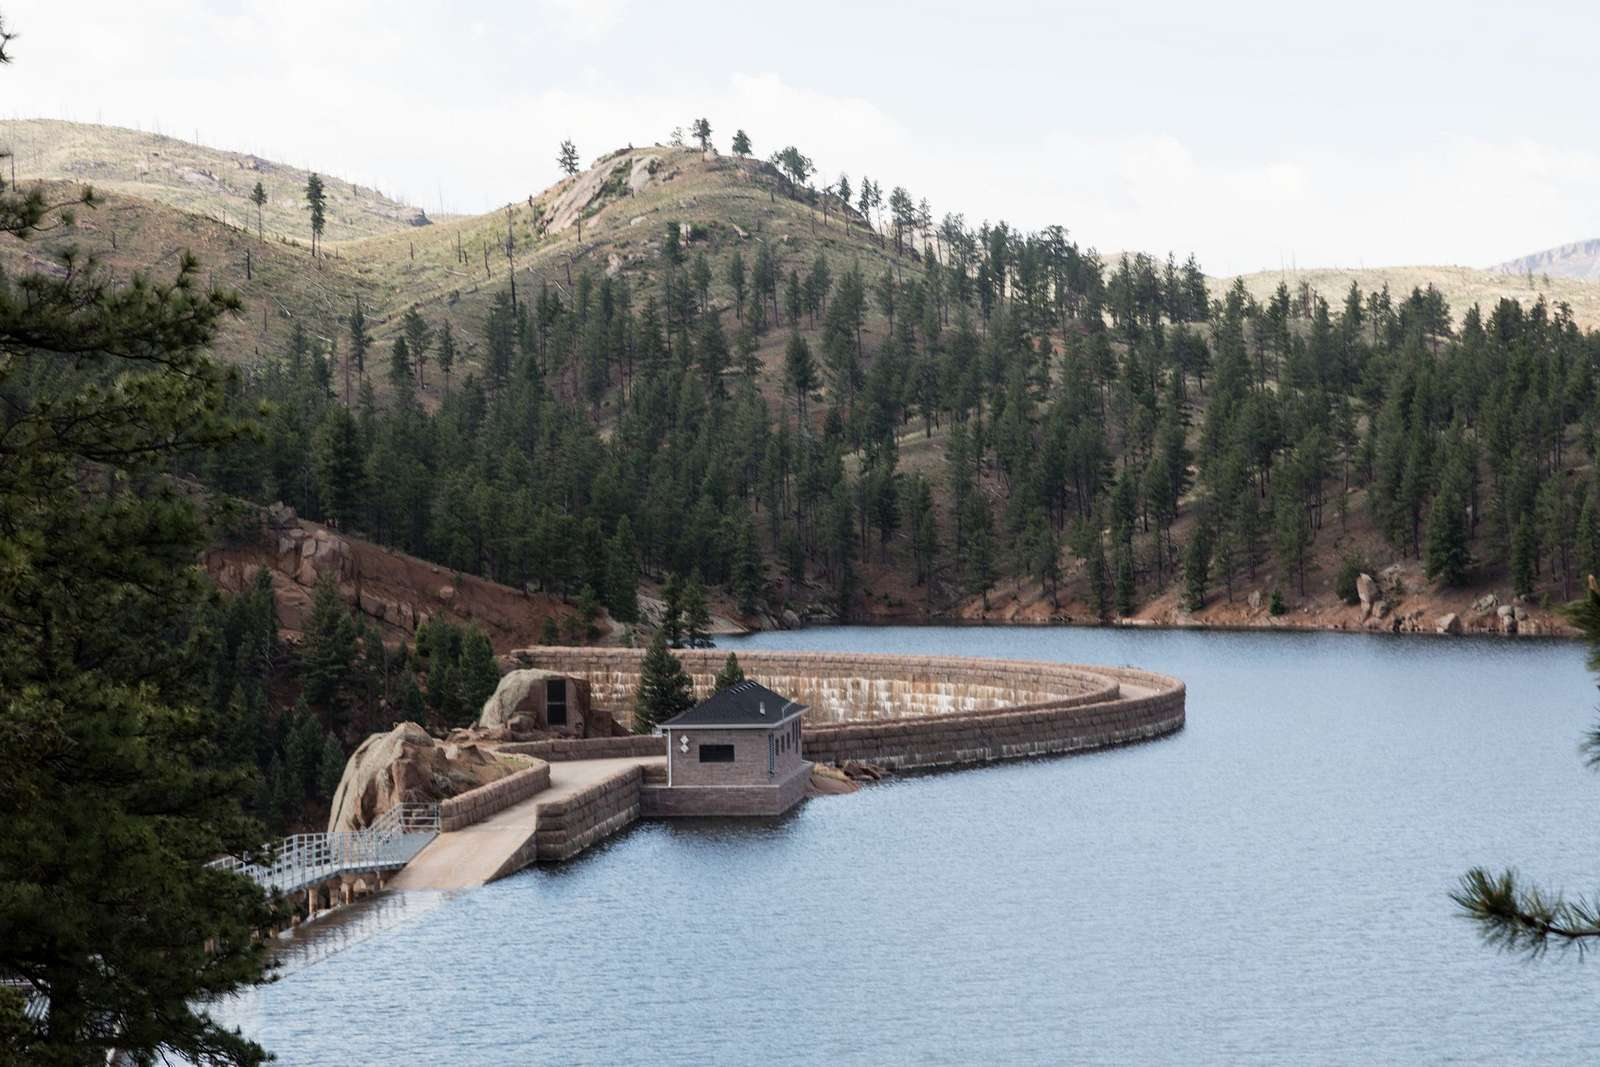 View of the Cheesman Dam from its vast reservoir in Jefferson County, Colorado. Cheesman is one of the dams that slows and captures water from the South Platte River for use as part of Denver's drinking-water supply. Cheesman Dam, which was named for Walter Scott Cheesman, a Denver druggist, railroad builder, and designer of water infrastructure, was the world's tallest at 221 feet when it was completed in 1905